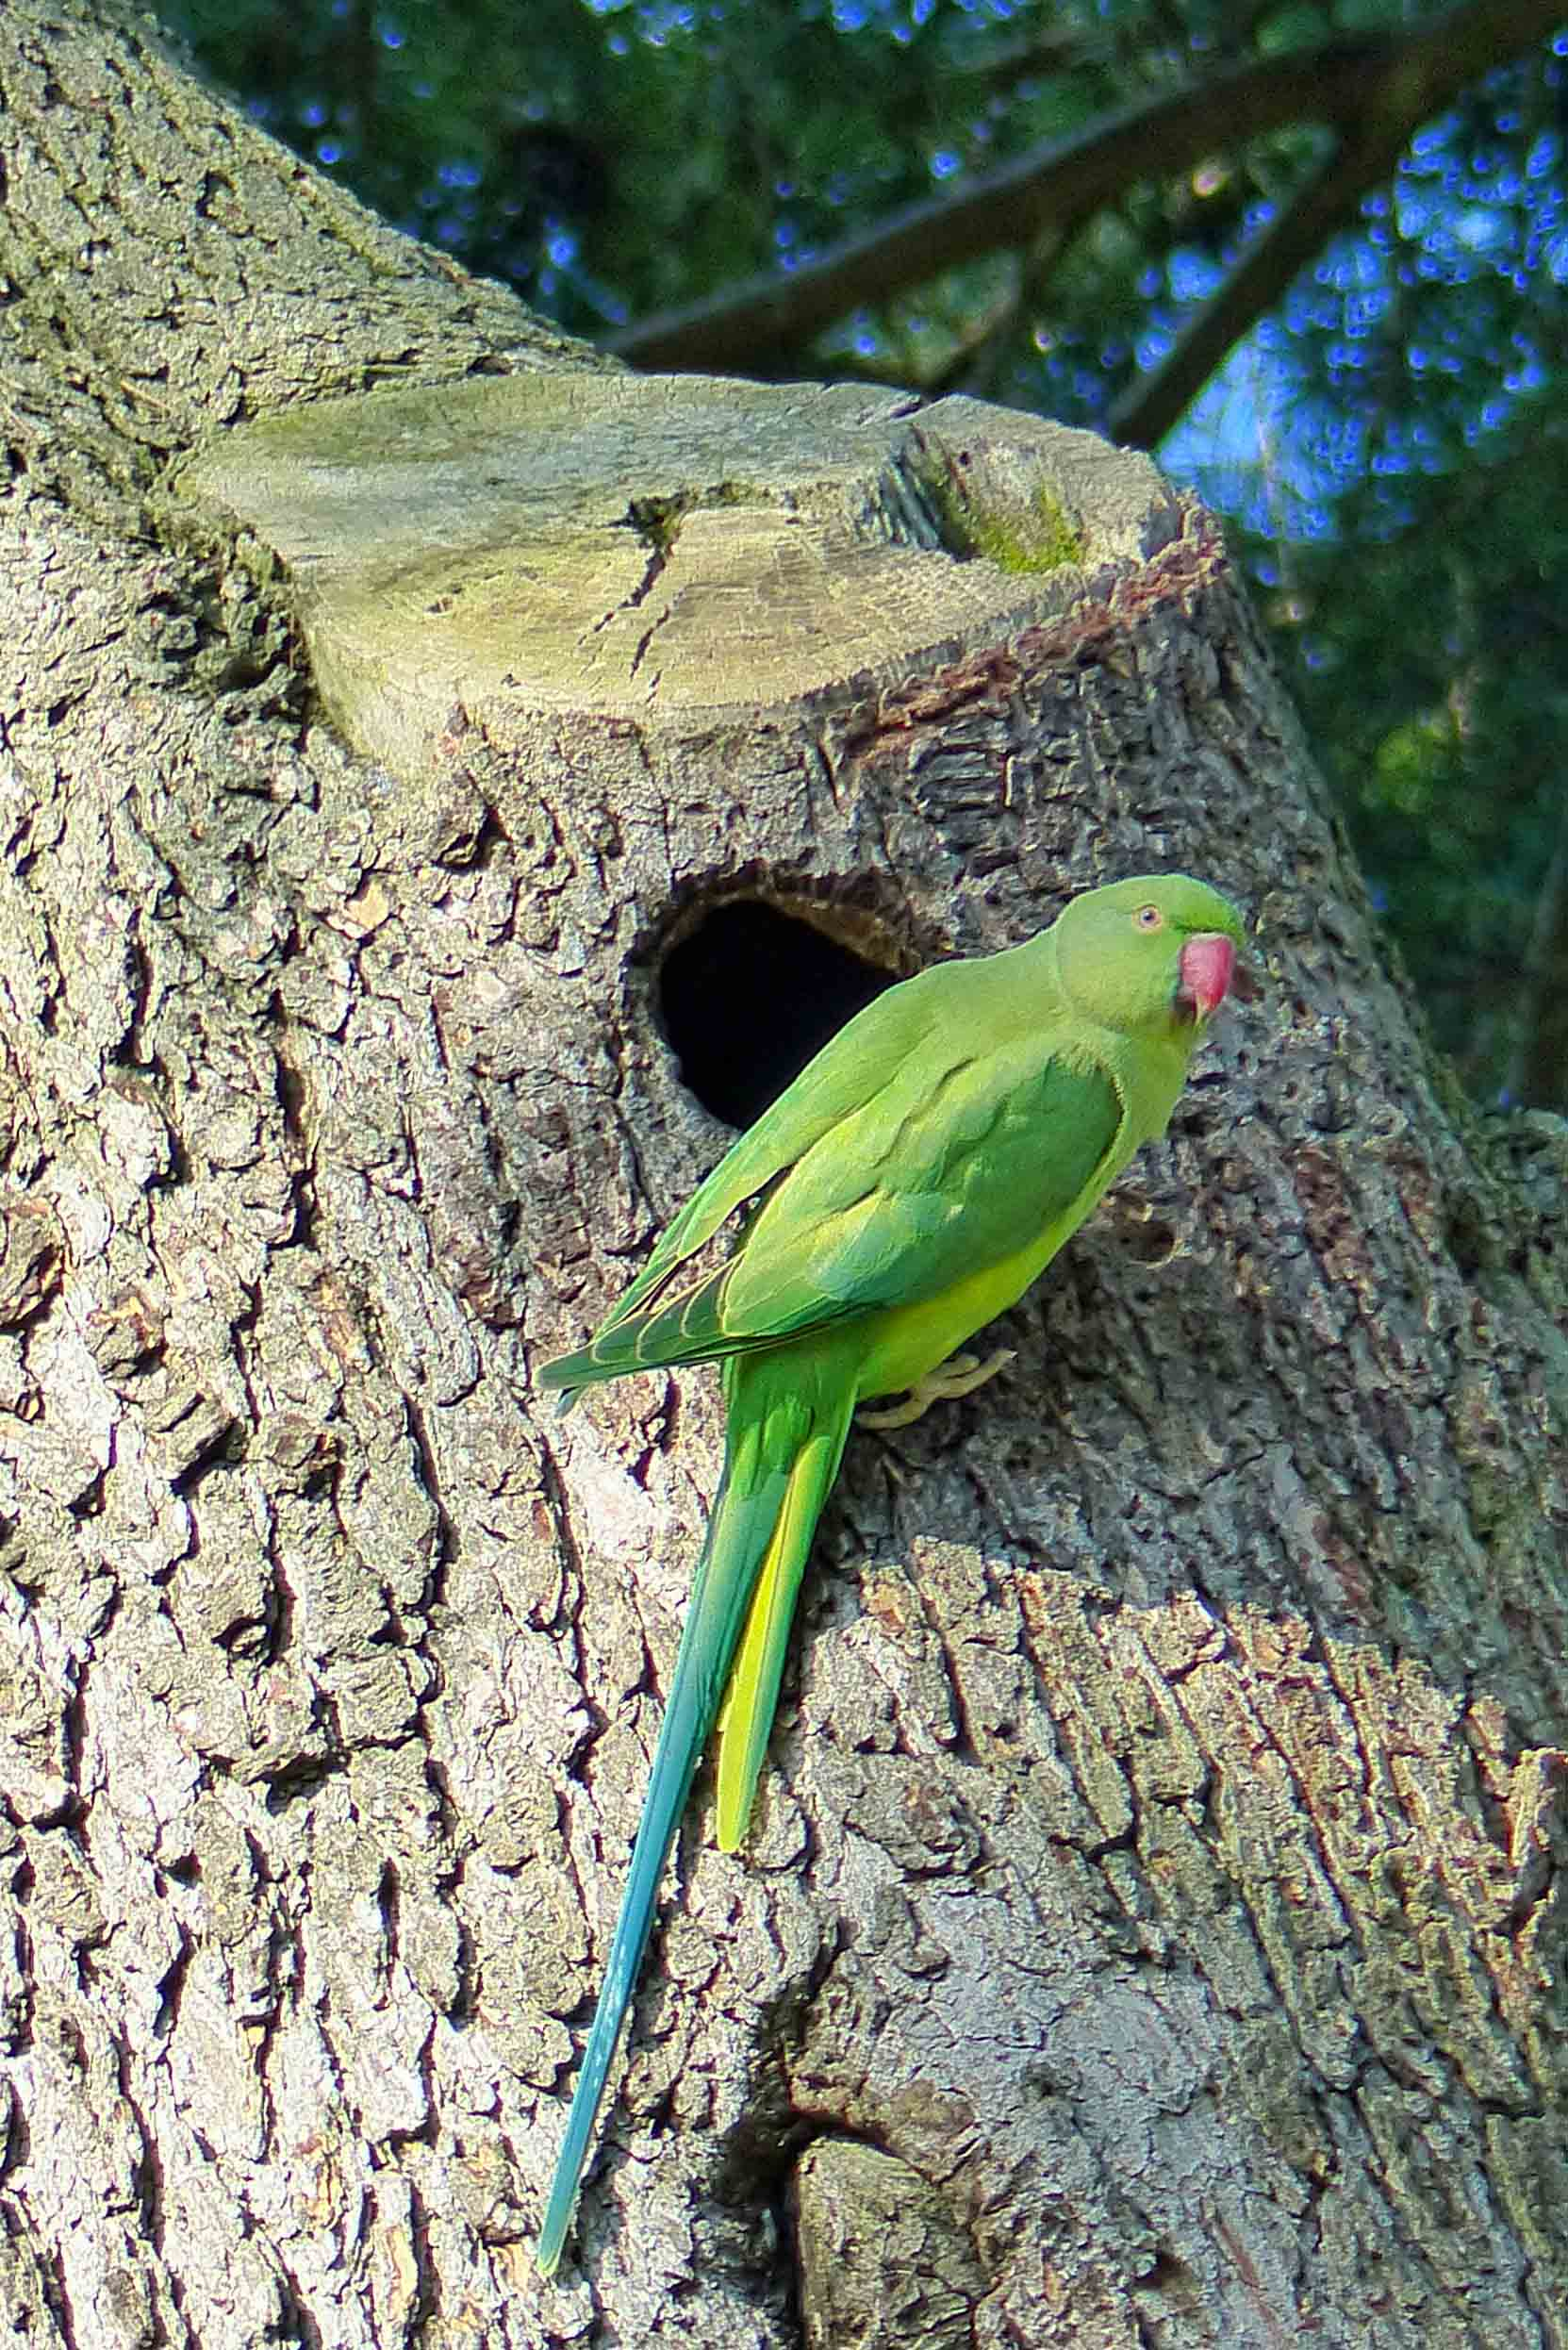 Green bird with long tail by a hole in a tree trunk